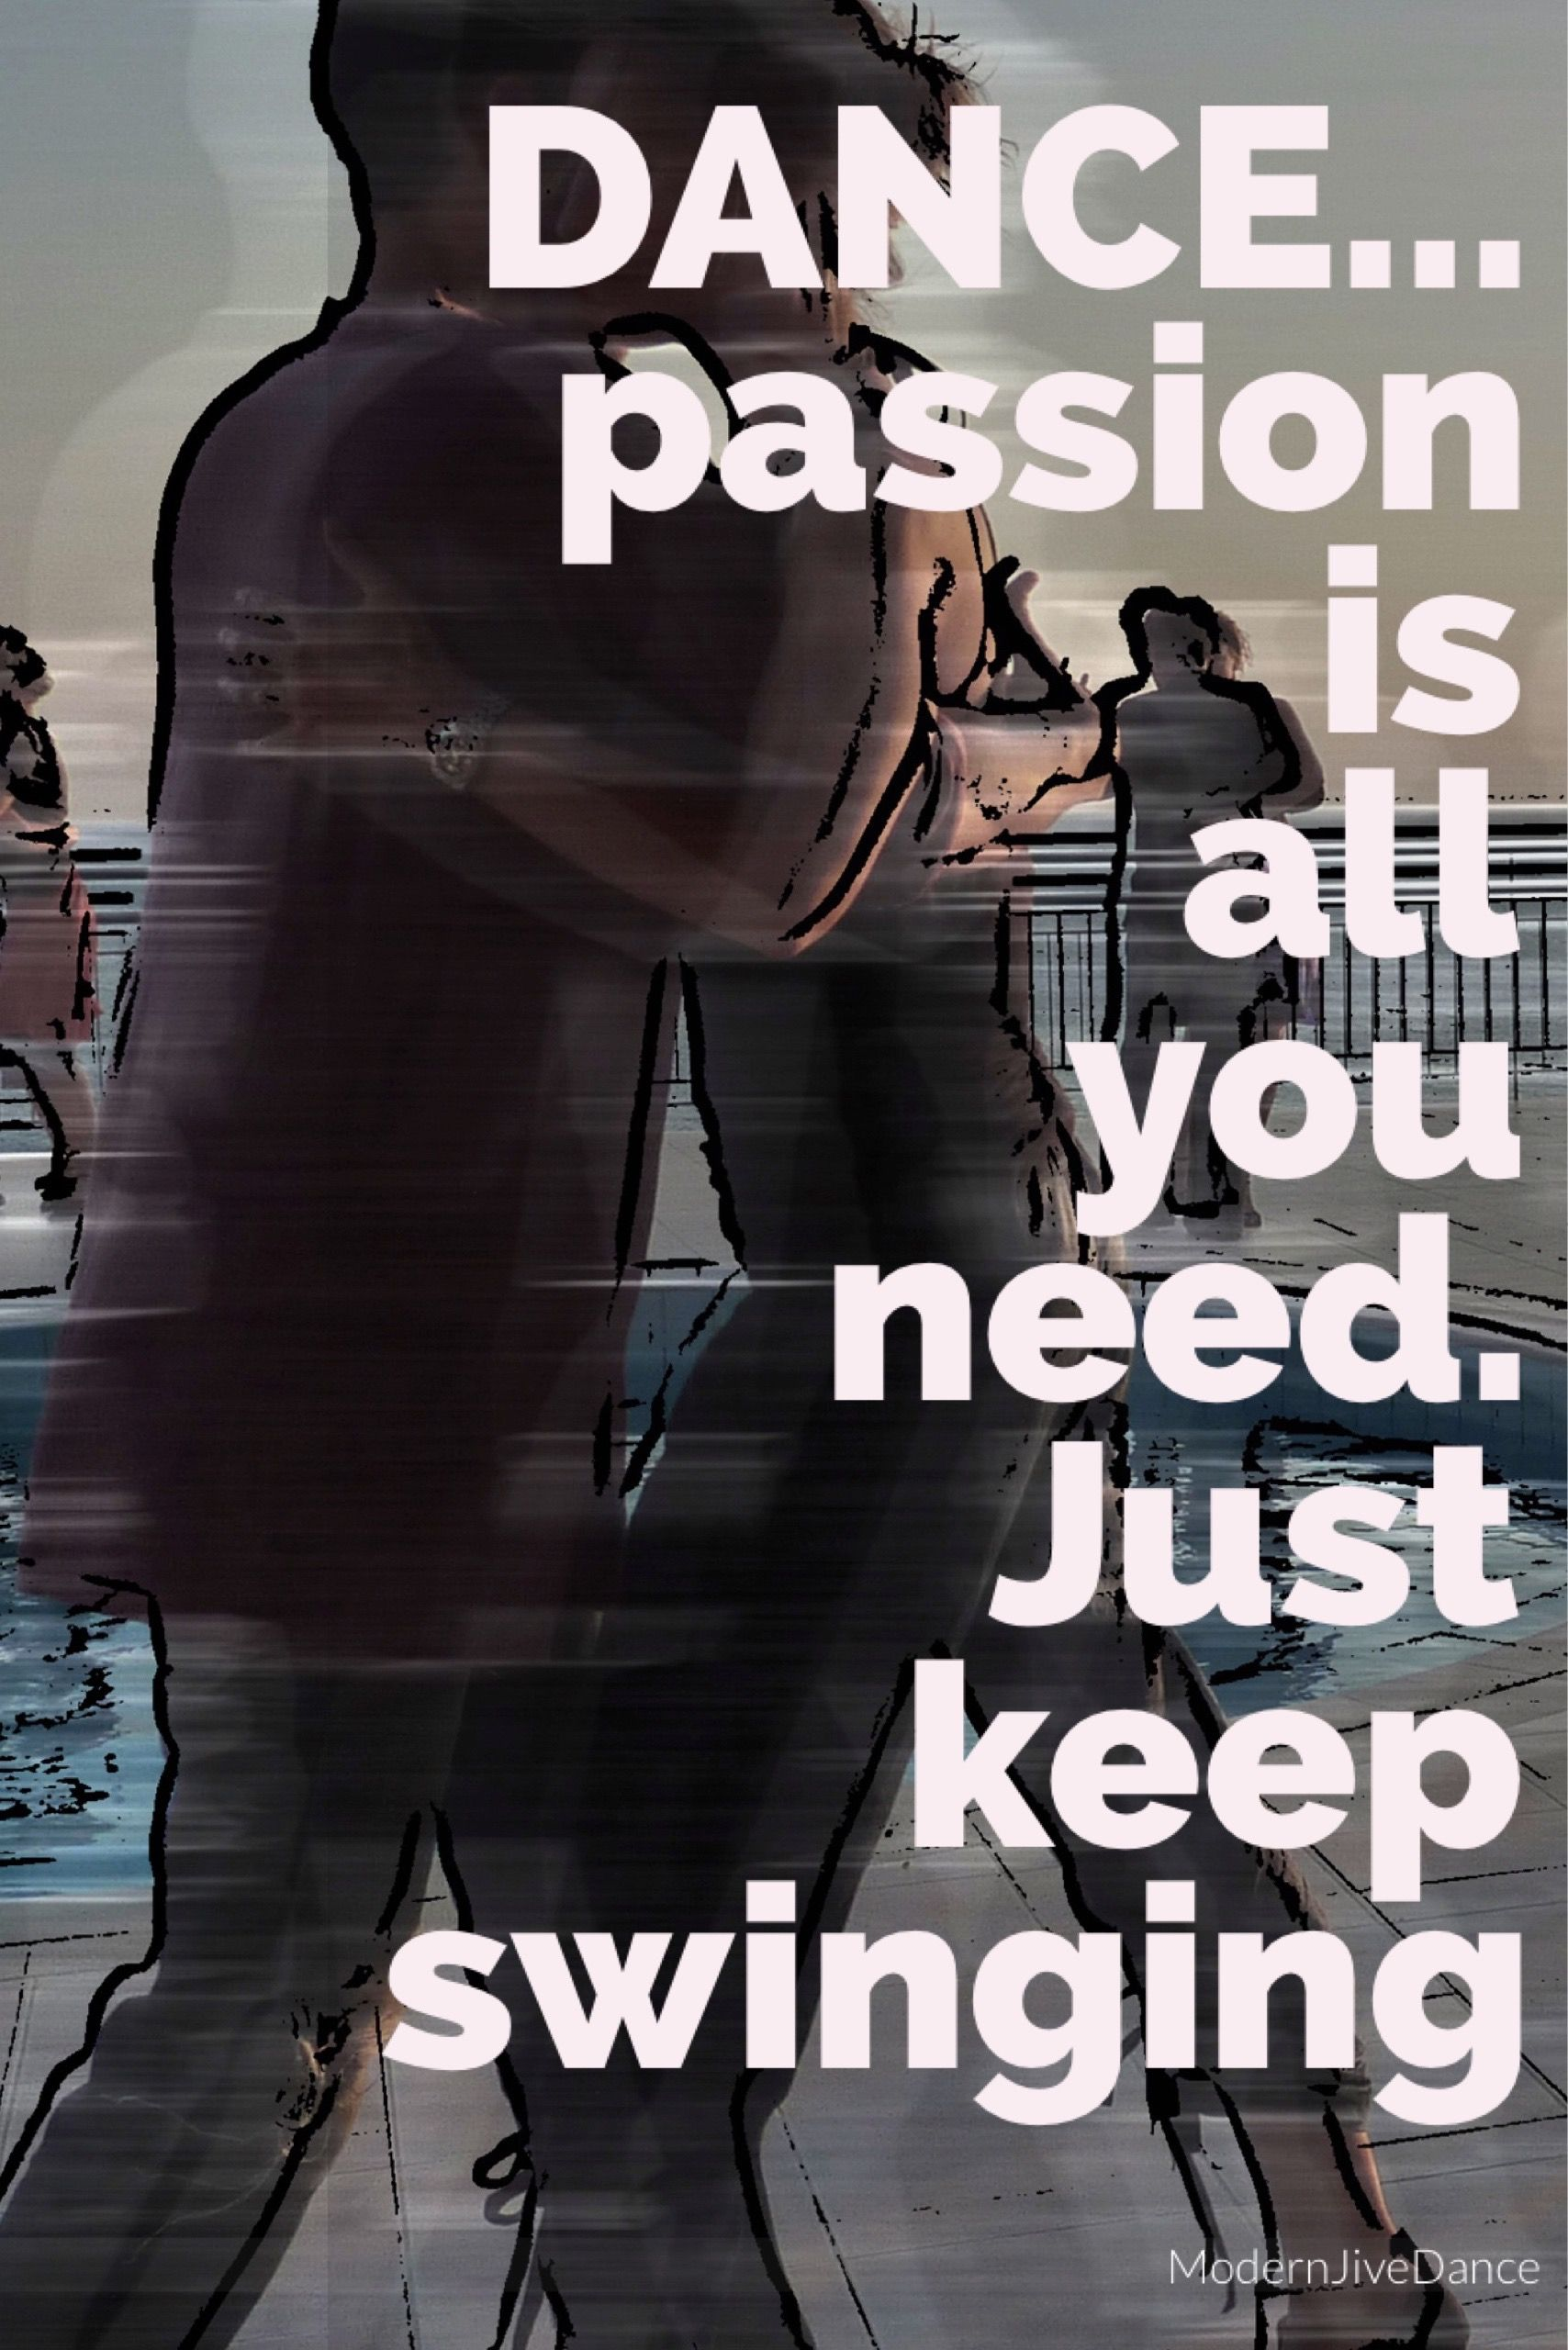 Dance... passion is all you need. Just keep swing. Dance